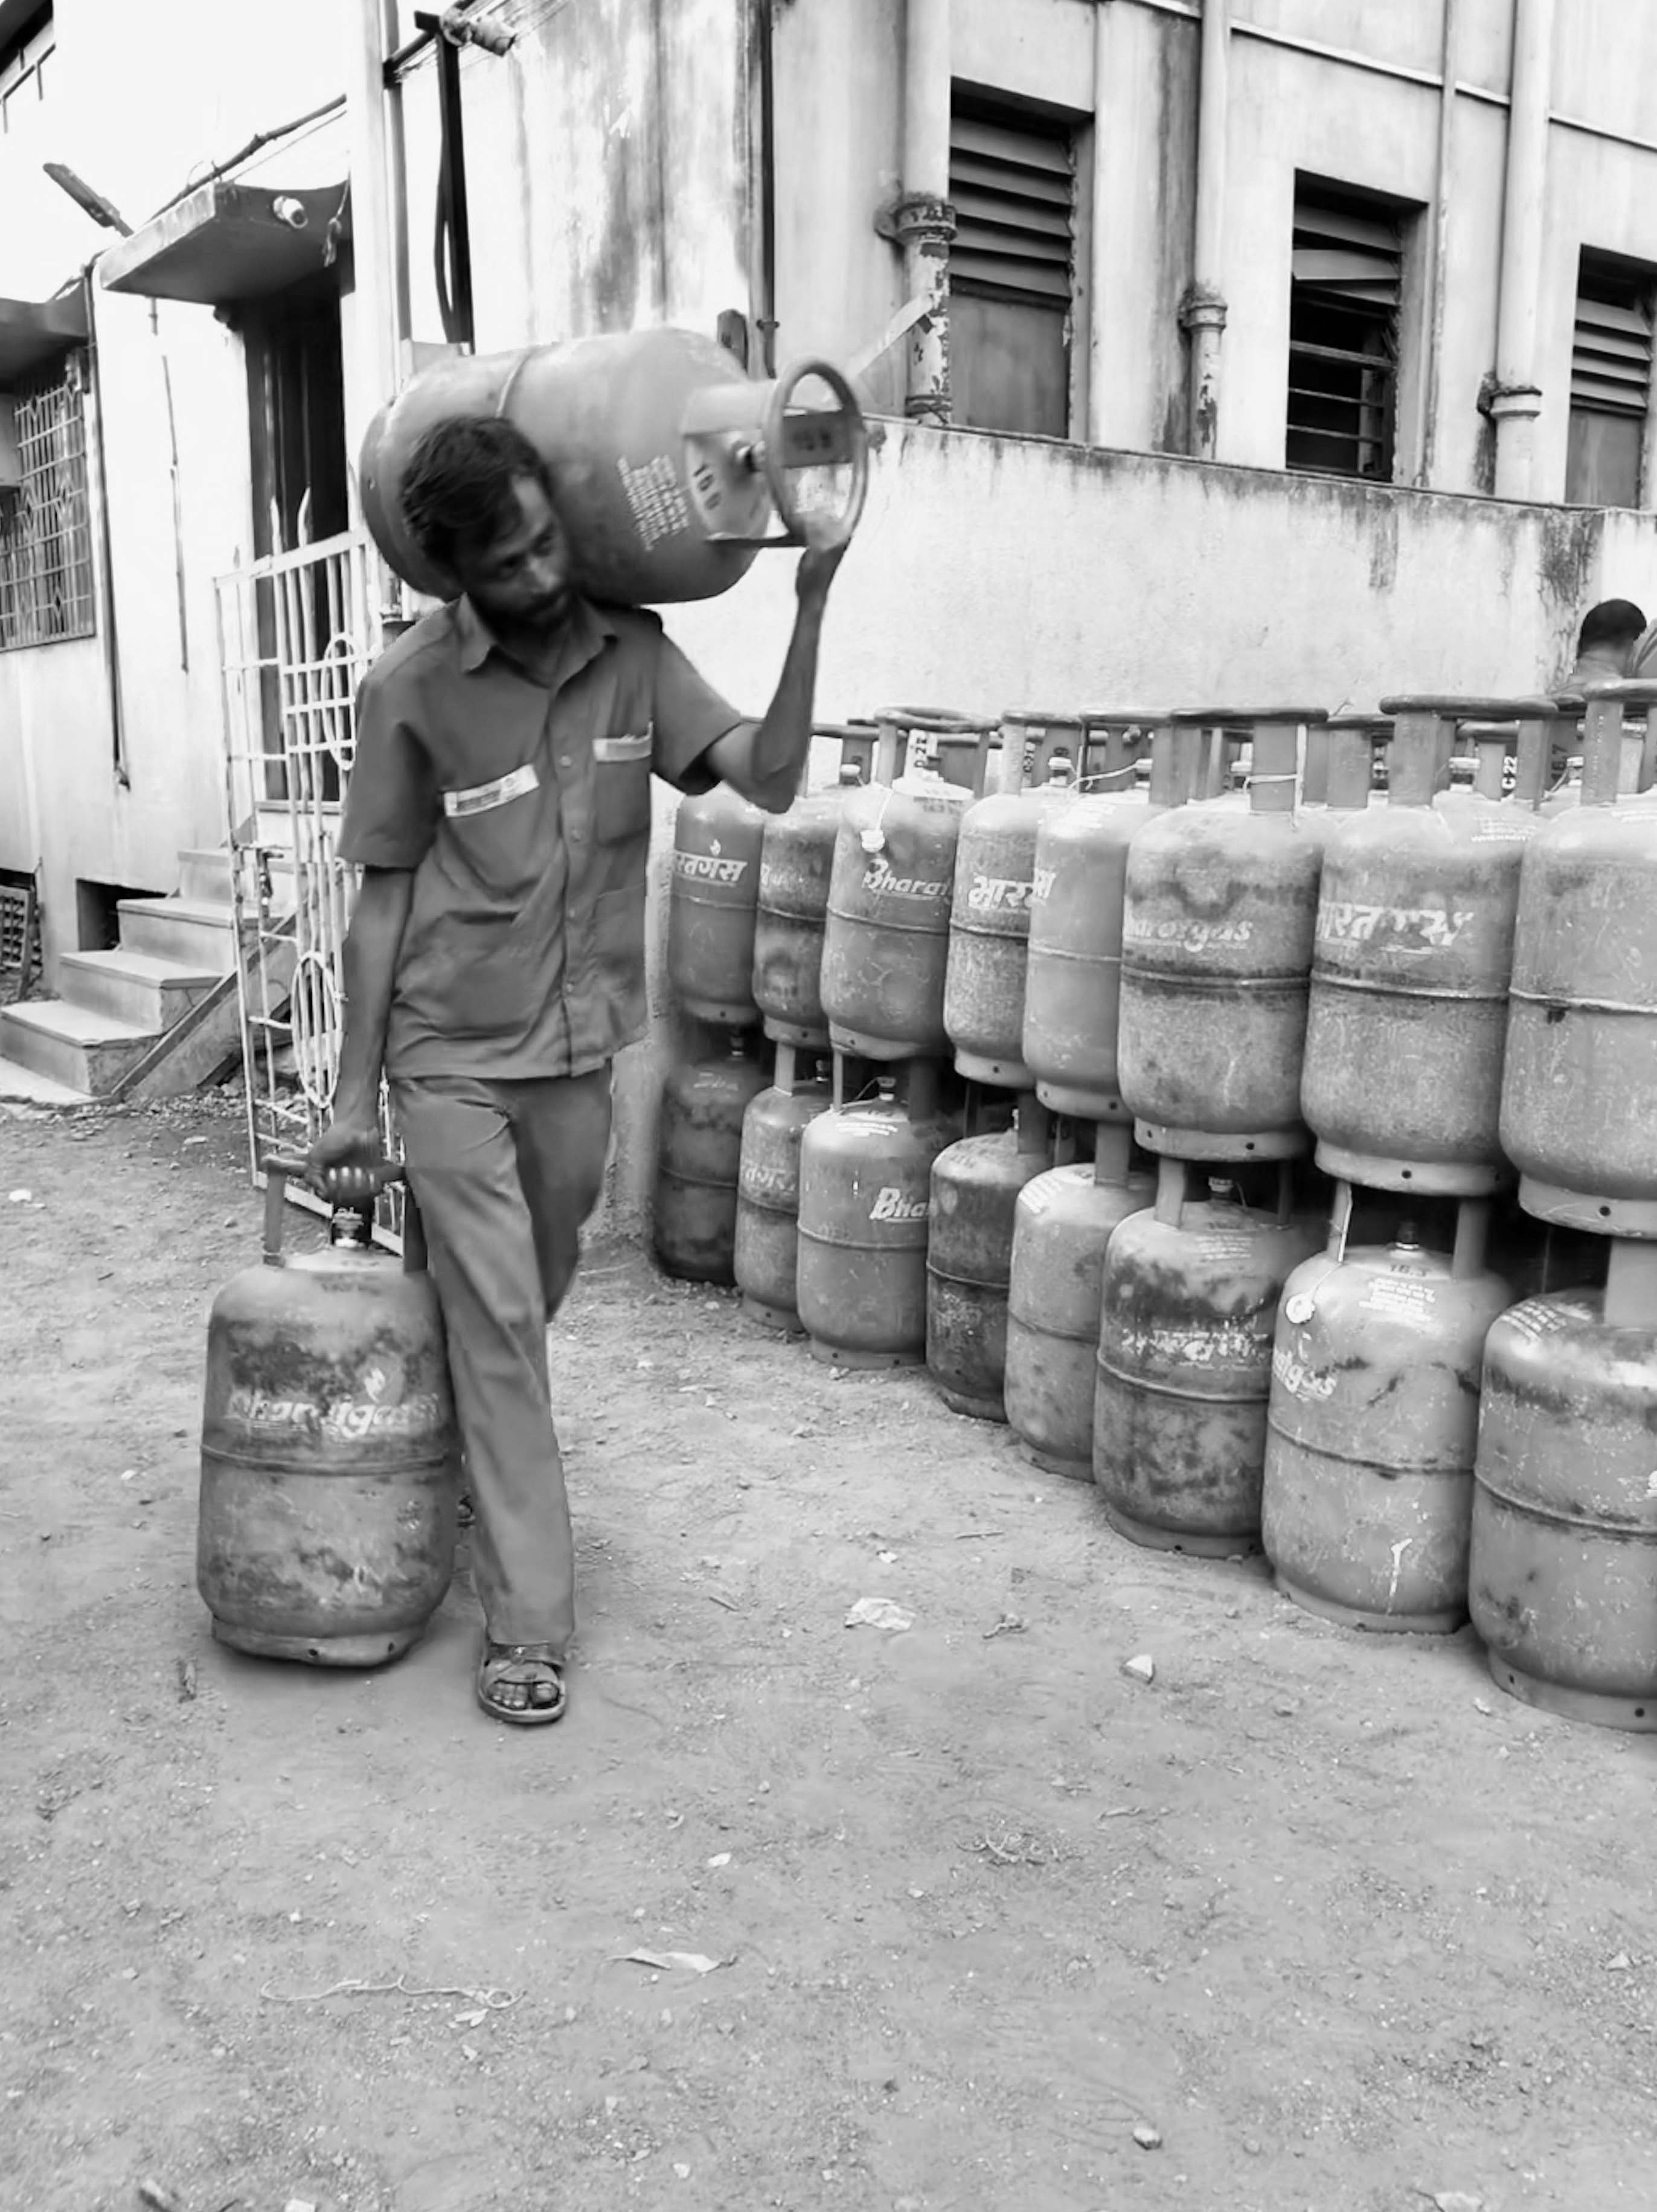 A delivery guy carrying two heavy cylinders with LPG.